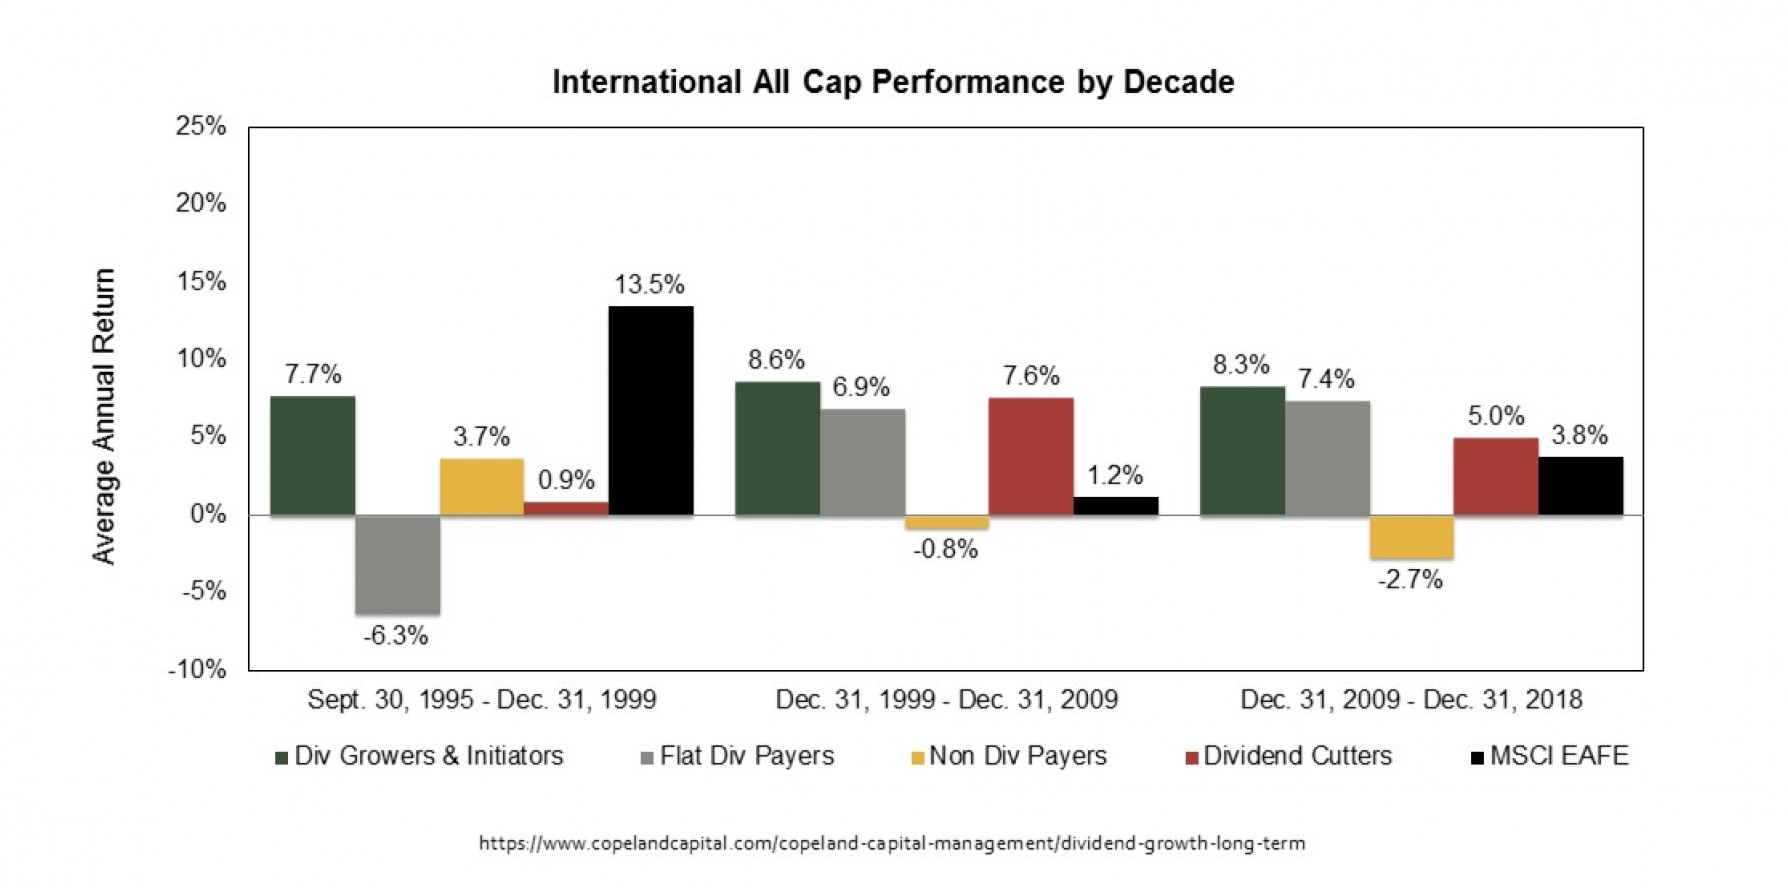 International All Cap Stock Performance by Decade